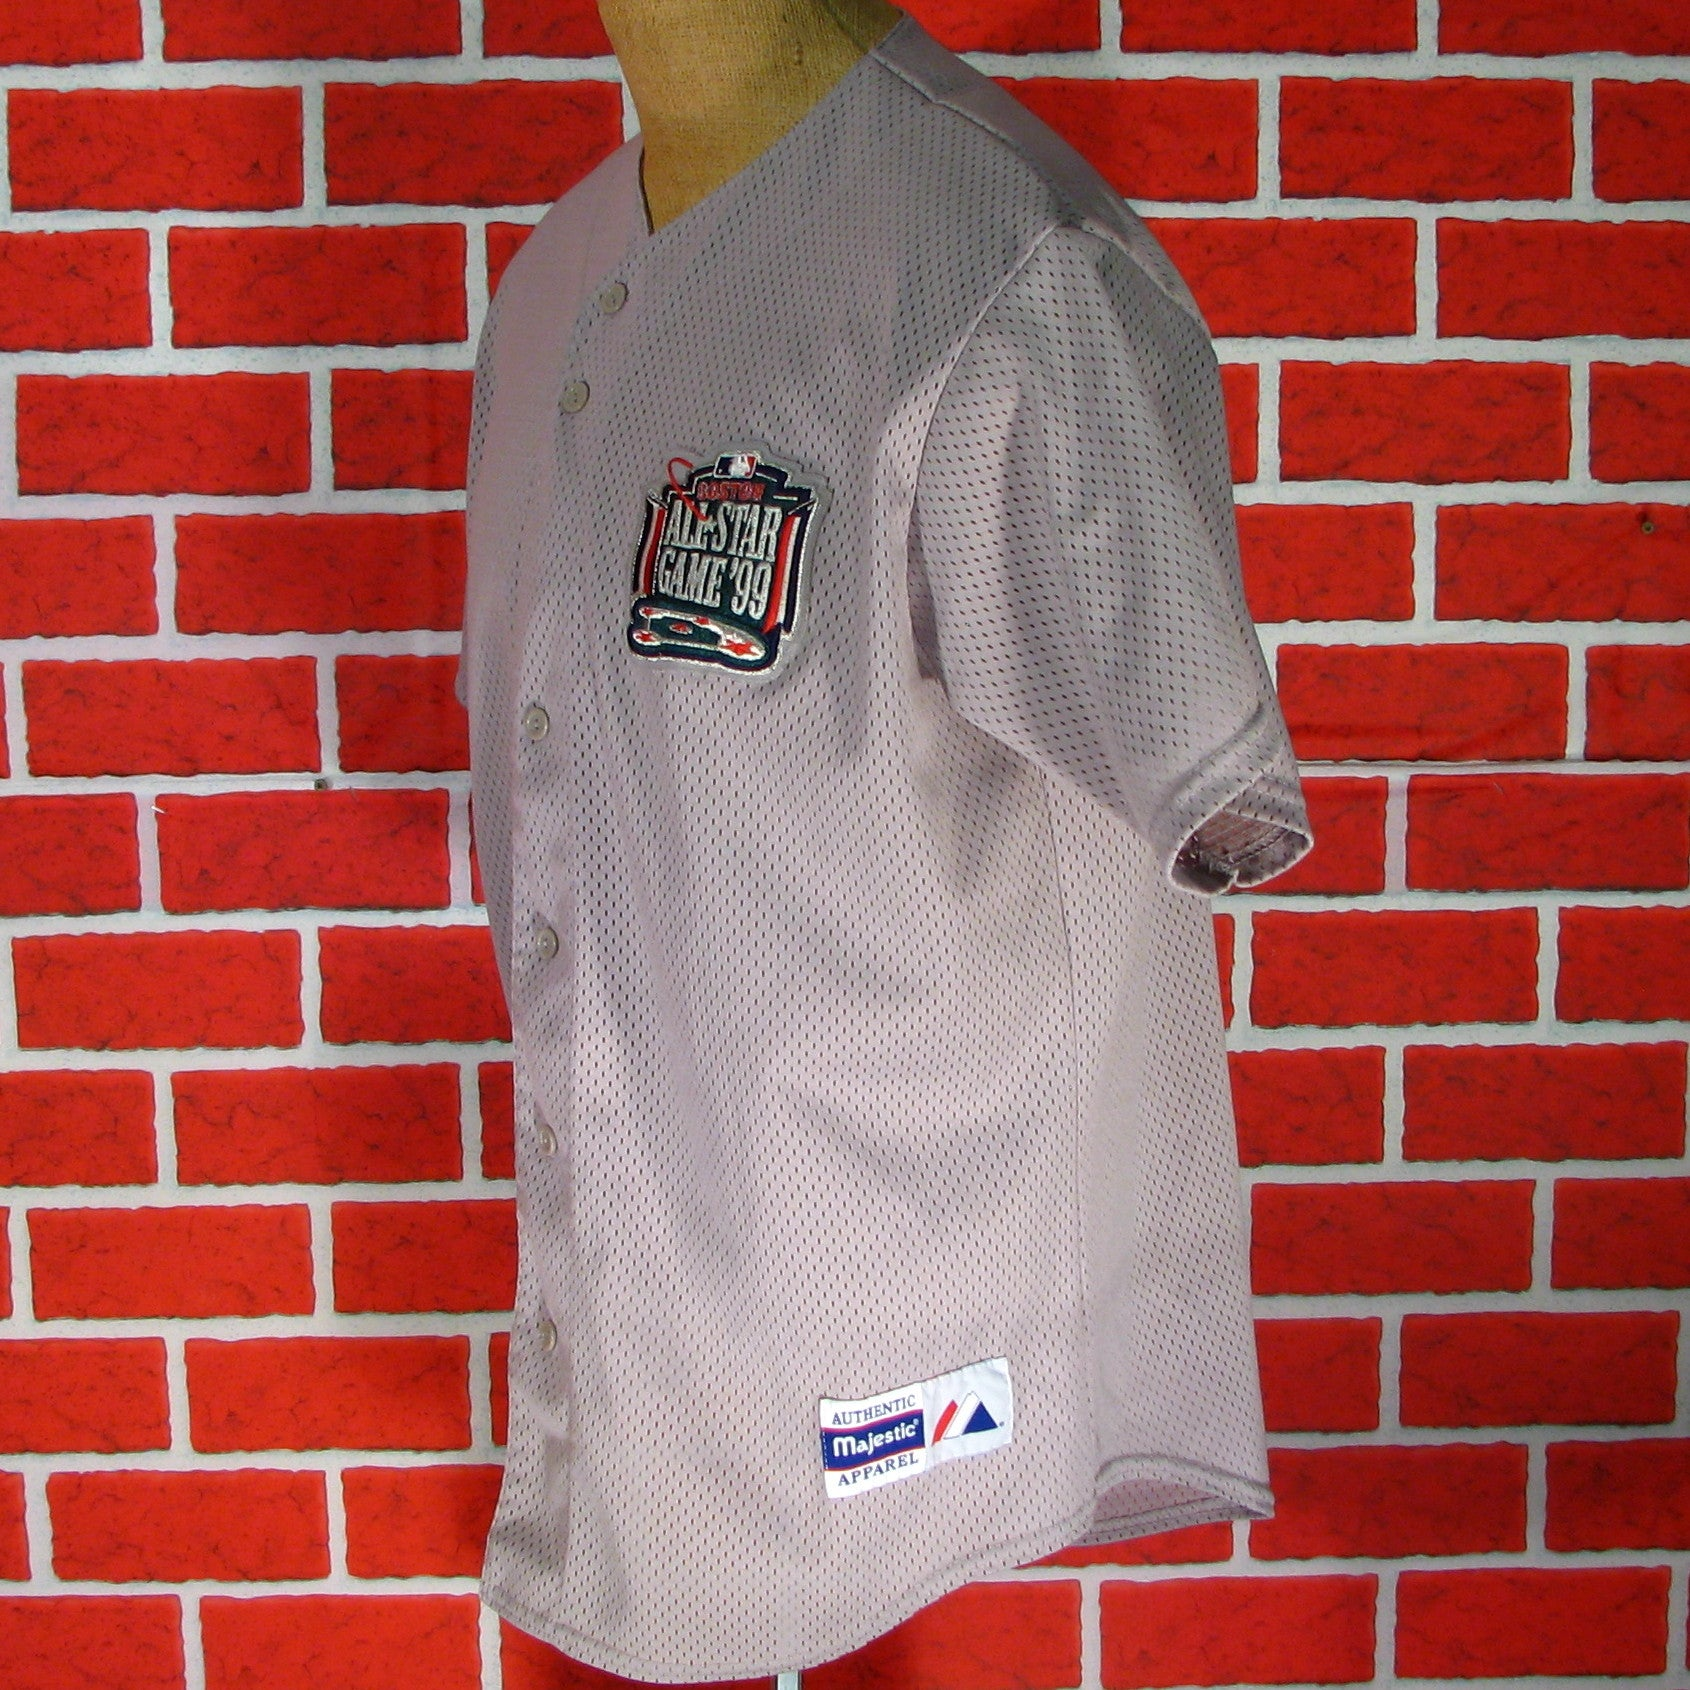 1999 Boston All Star Game Baseball Jersey